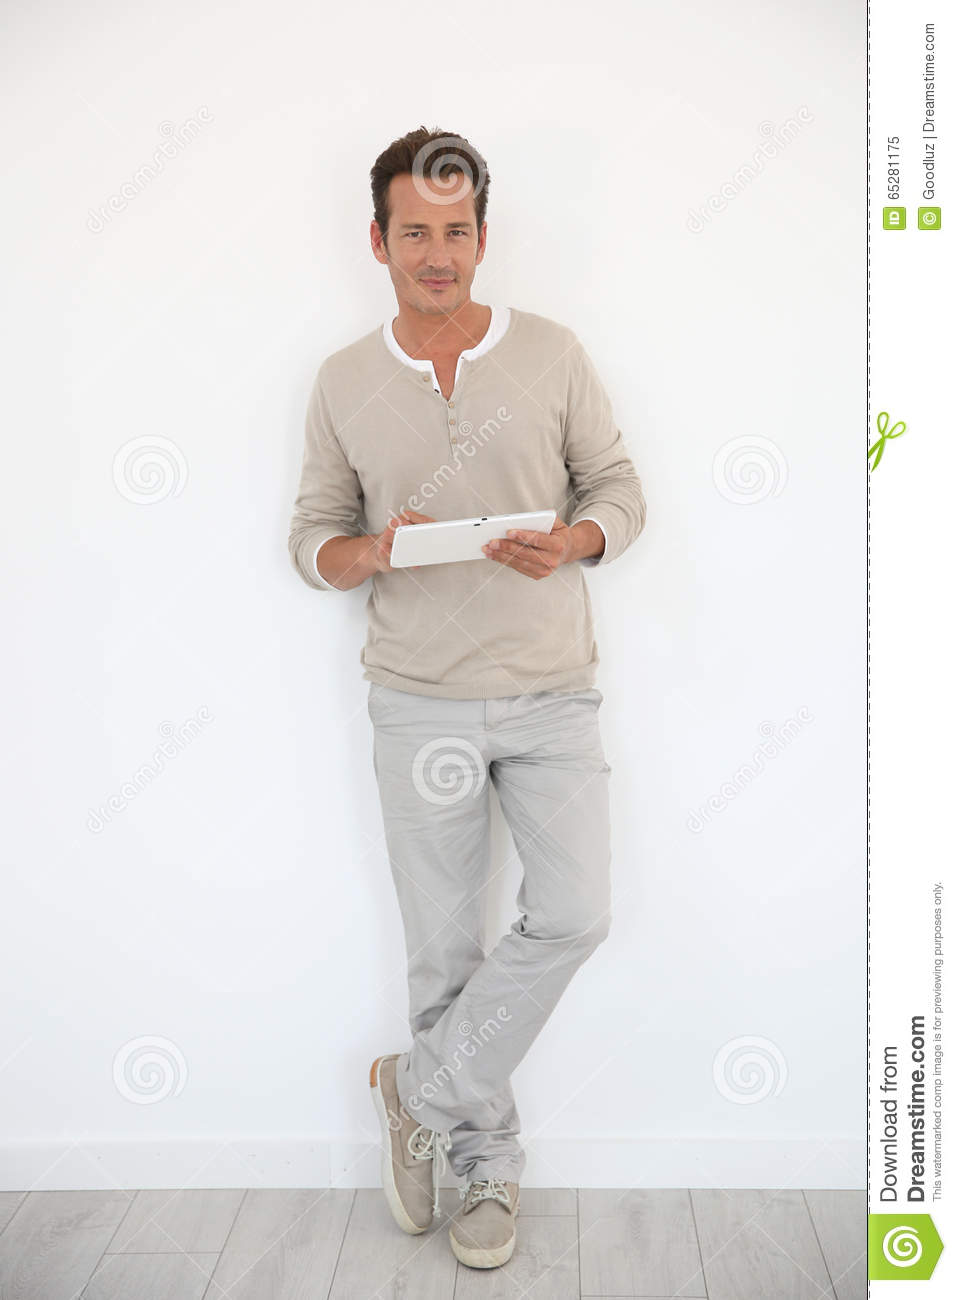 Man using tablet standing isolated